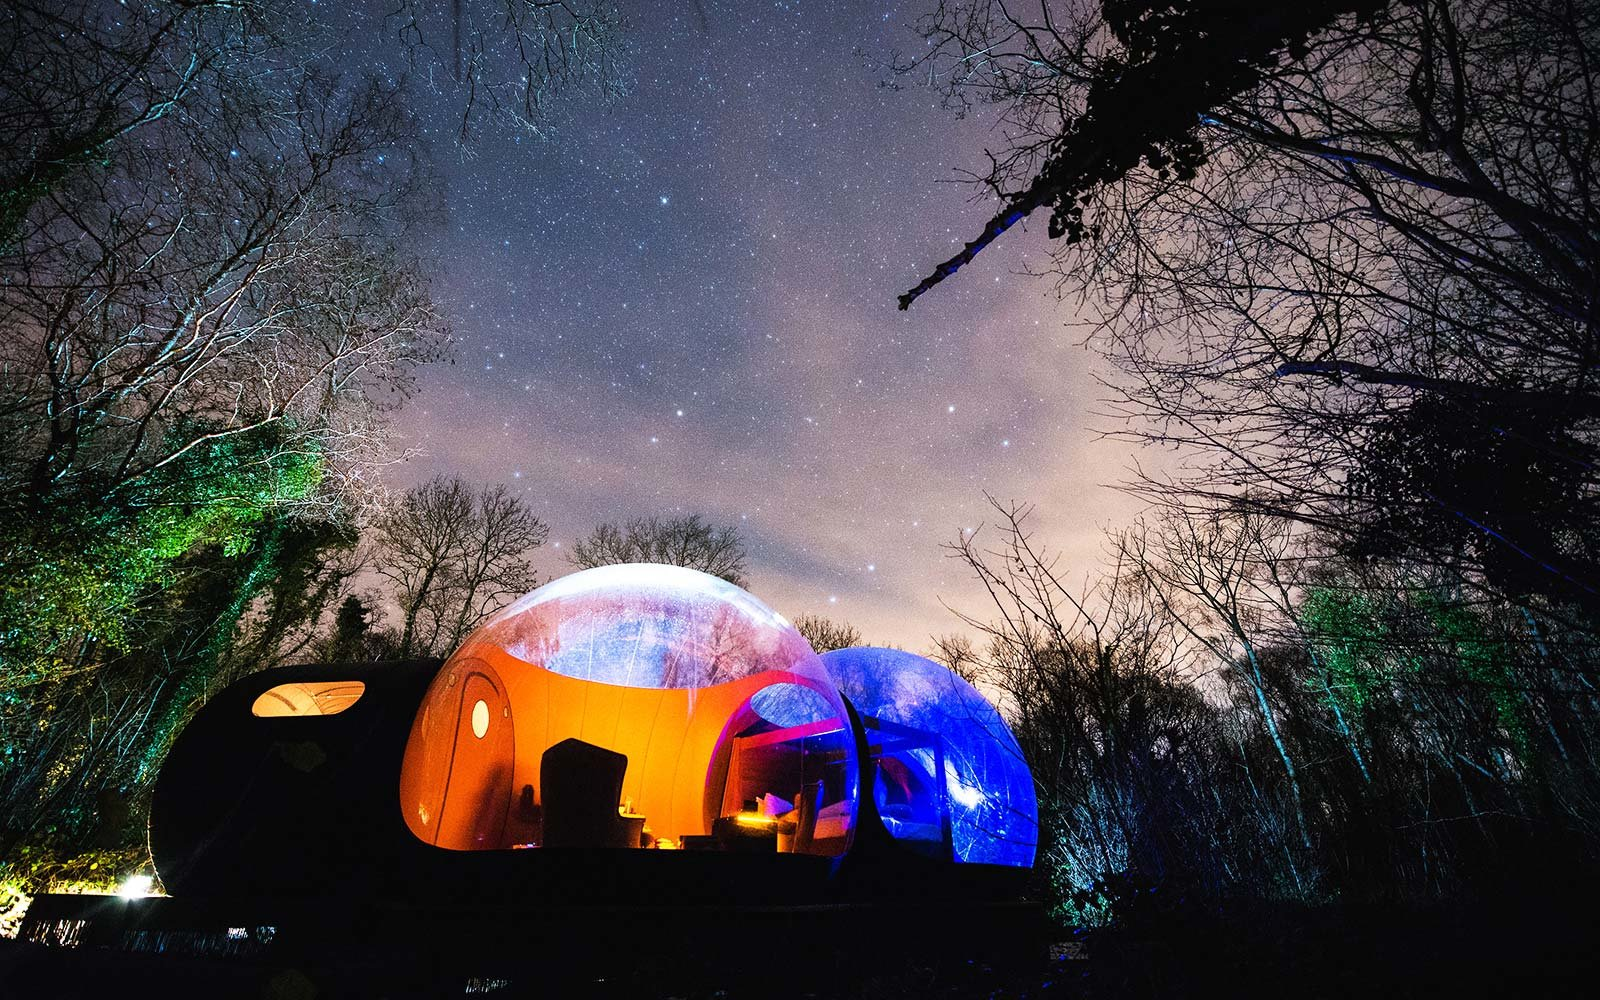 Fall Asleep Under Millions Of Stars At This Bubble Hotel